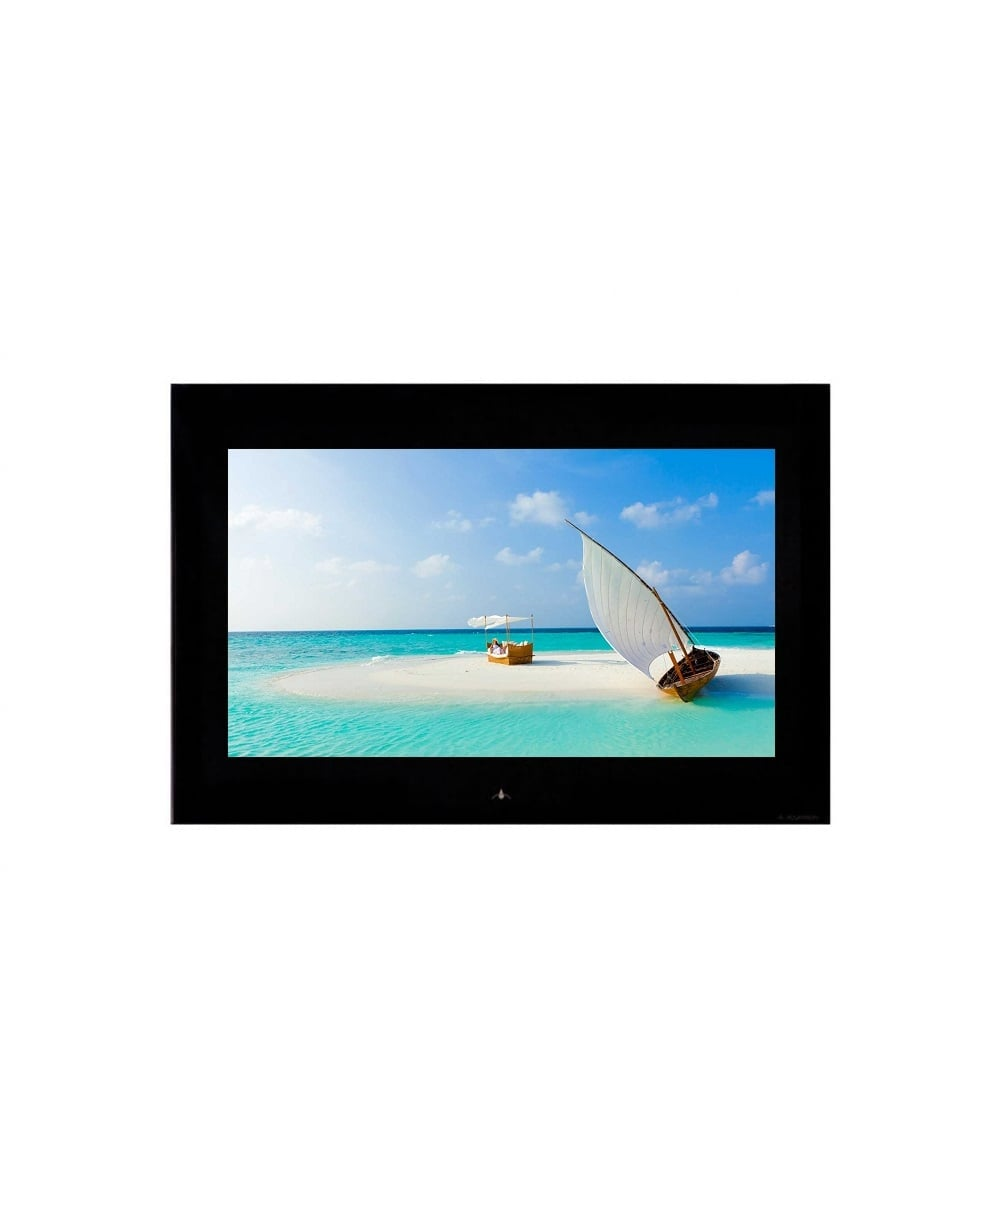 Complete Genesis Frameless Waterproof Bathroom Full HD 1080p TV